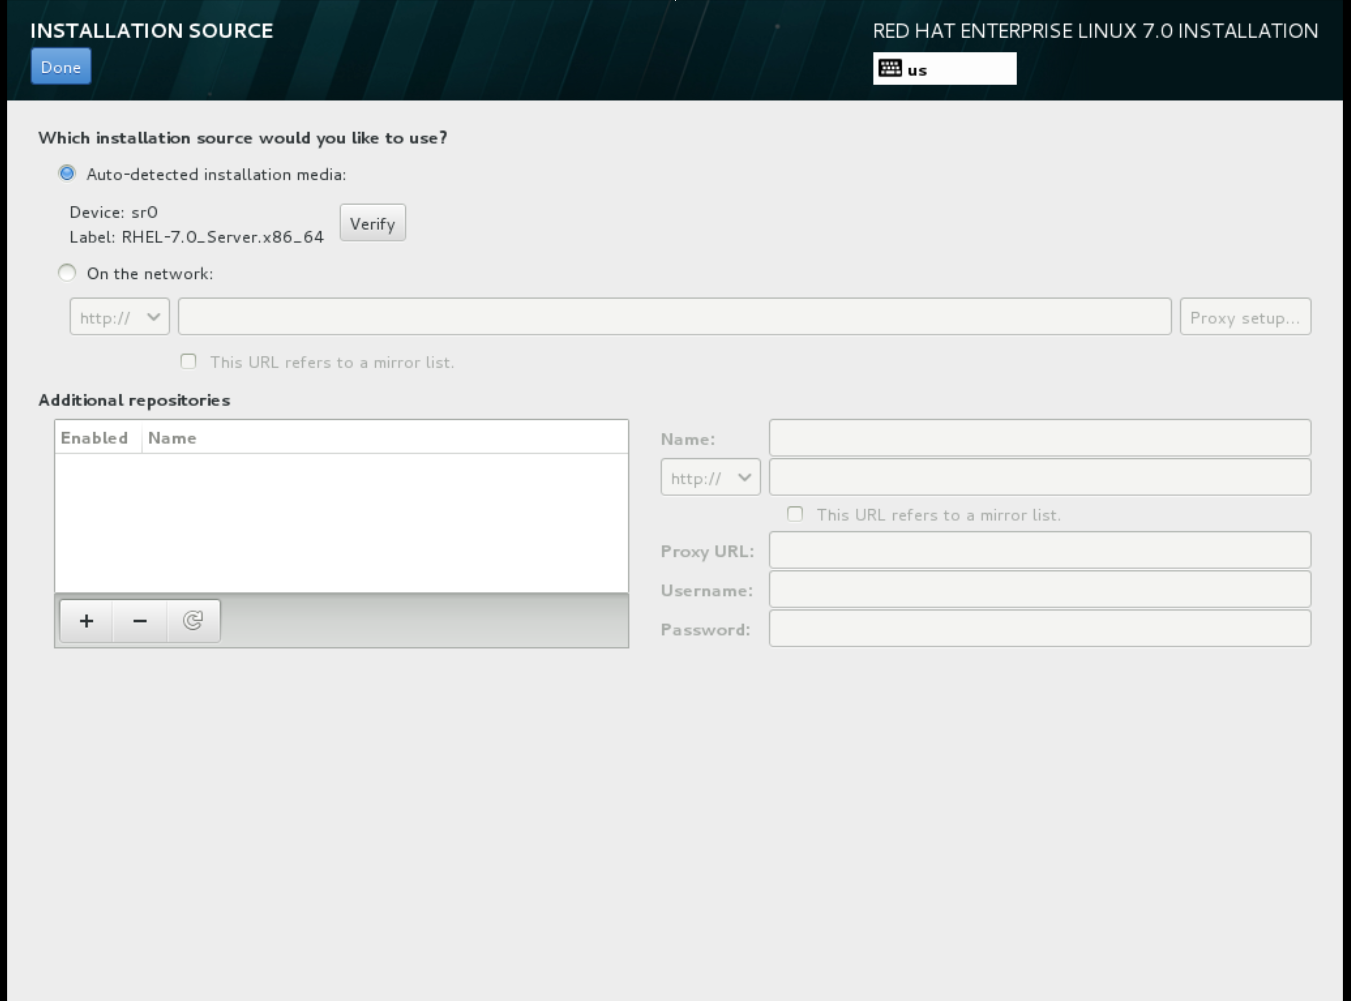 Chapter 1  Image Service - Red Hat Customer Portal